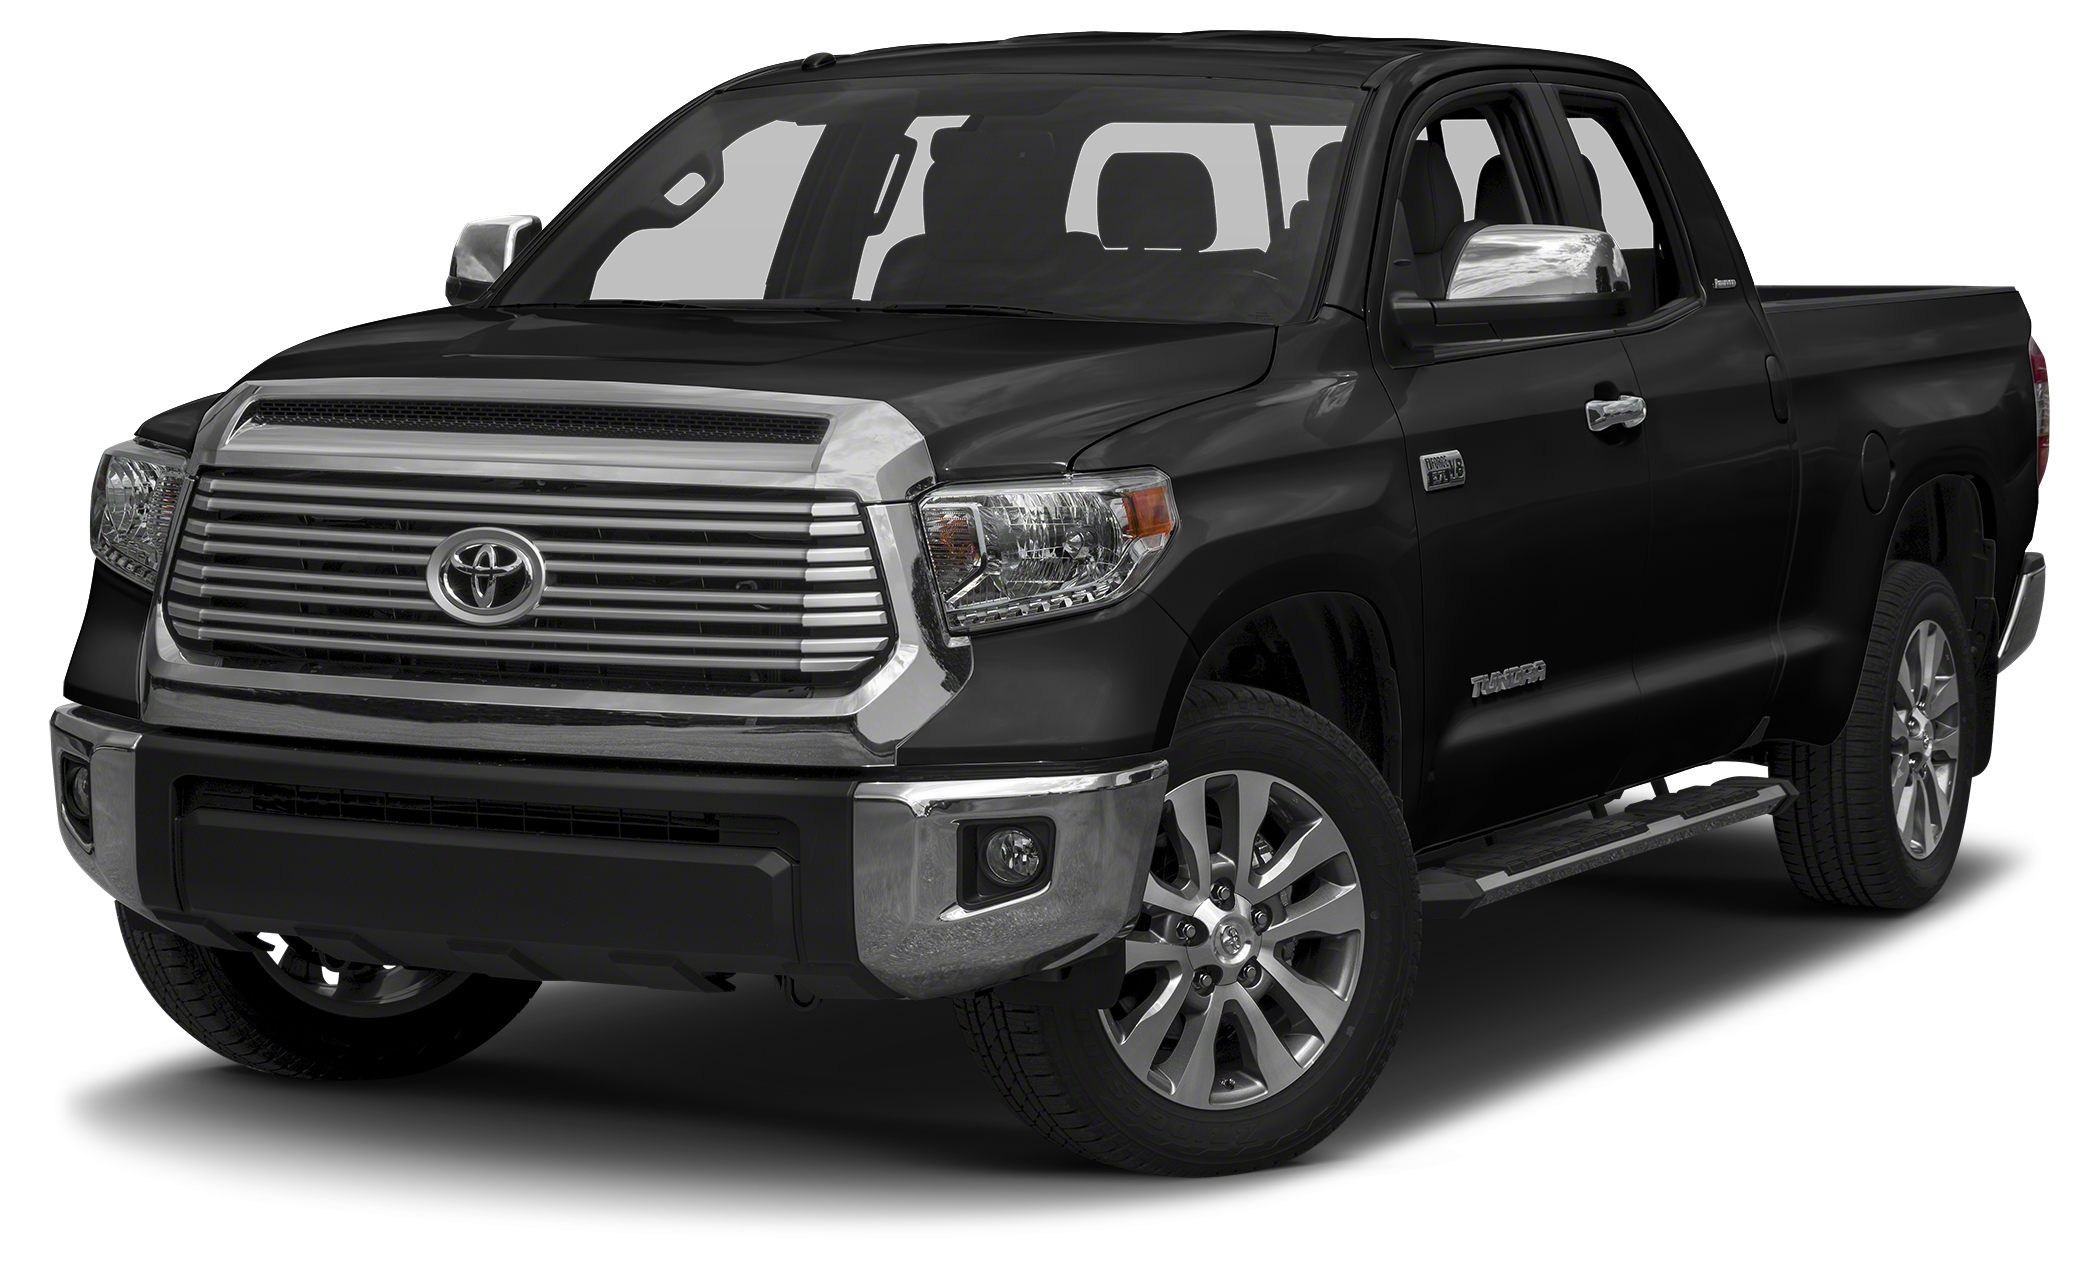 2016 Toyota Tundra Limited Miles 0Color Midnight Black Metallic Stock 543050 VIN 5TFBW5F12GX